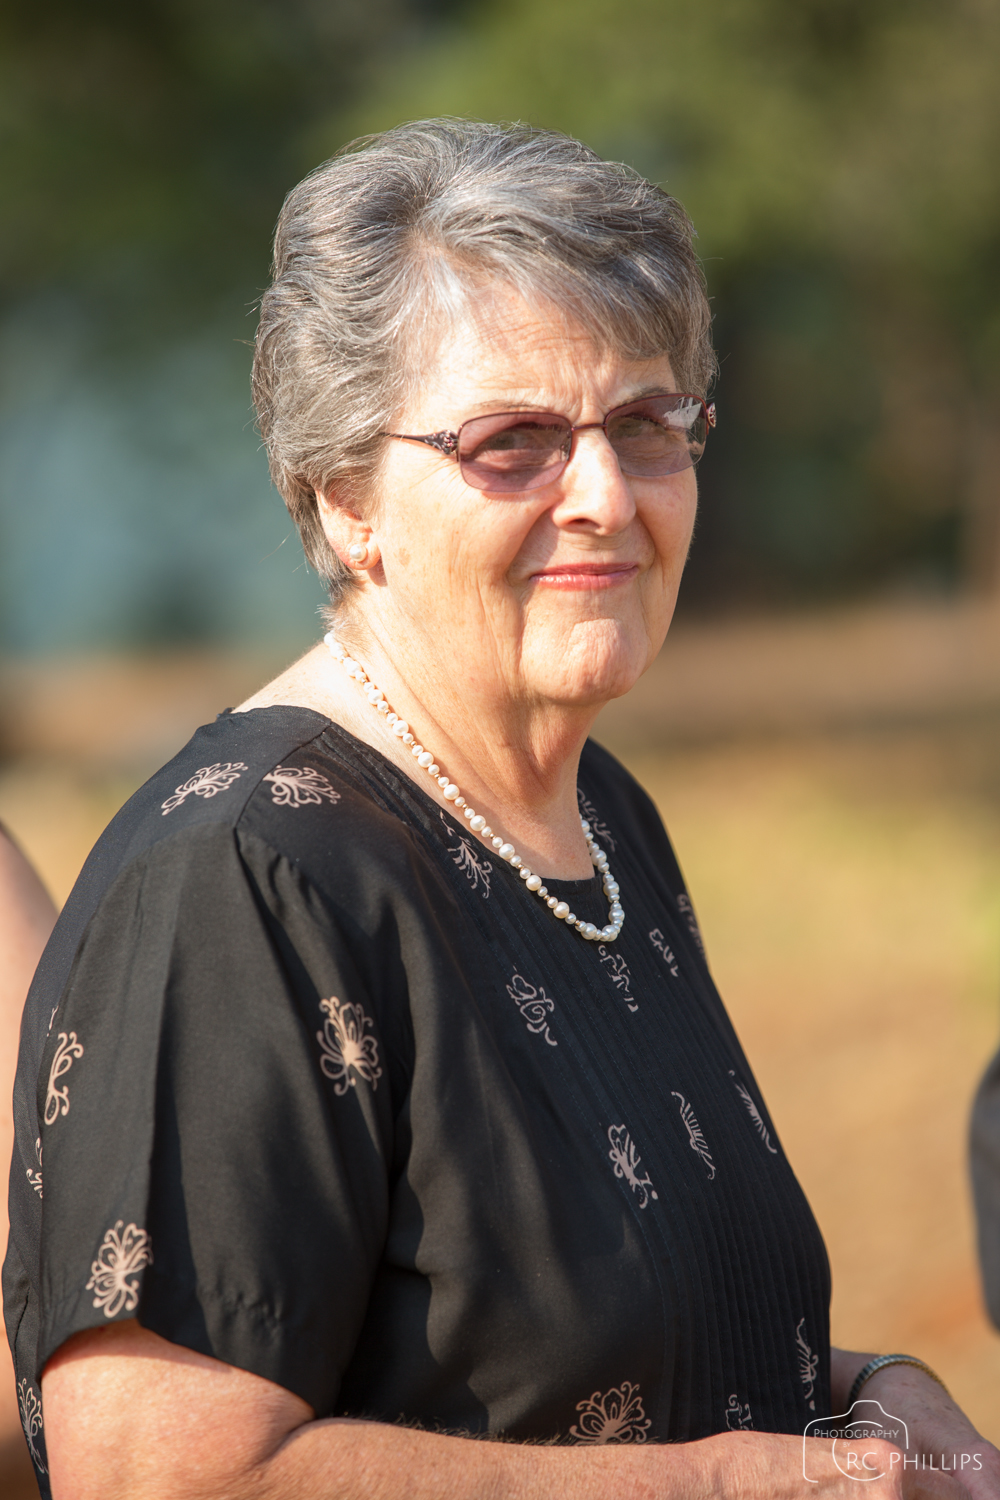 1/160 Sec. @ f/4.0 and ISO 100 Dan's mother Myrna at the graveside service.